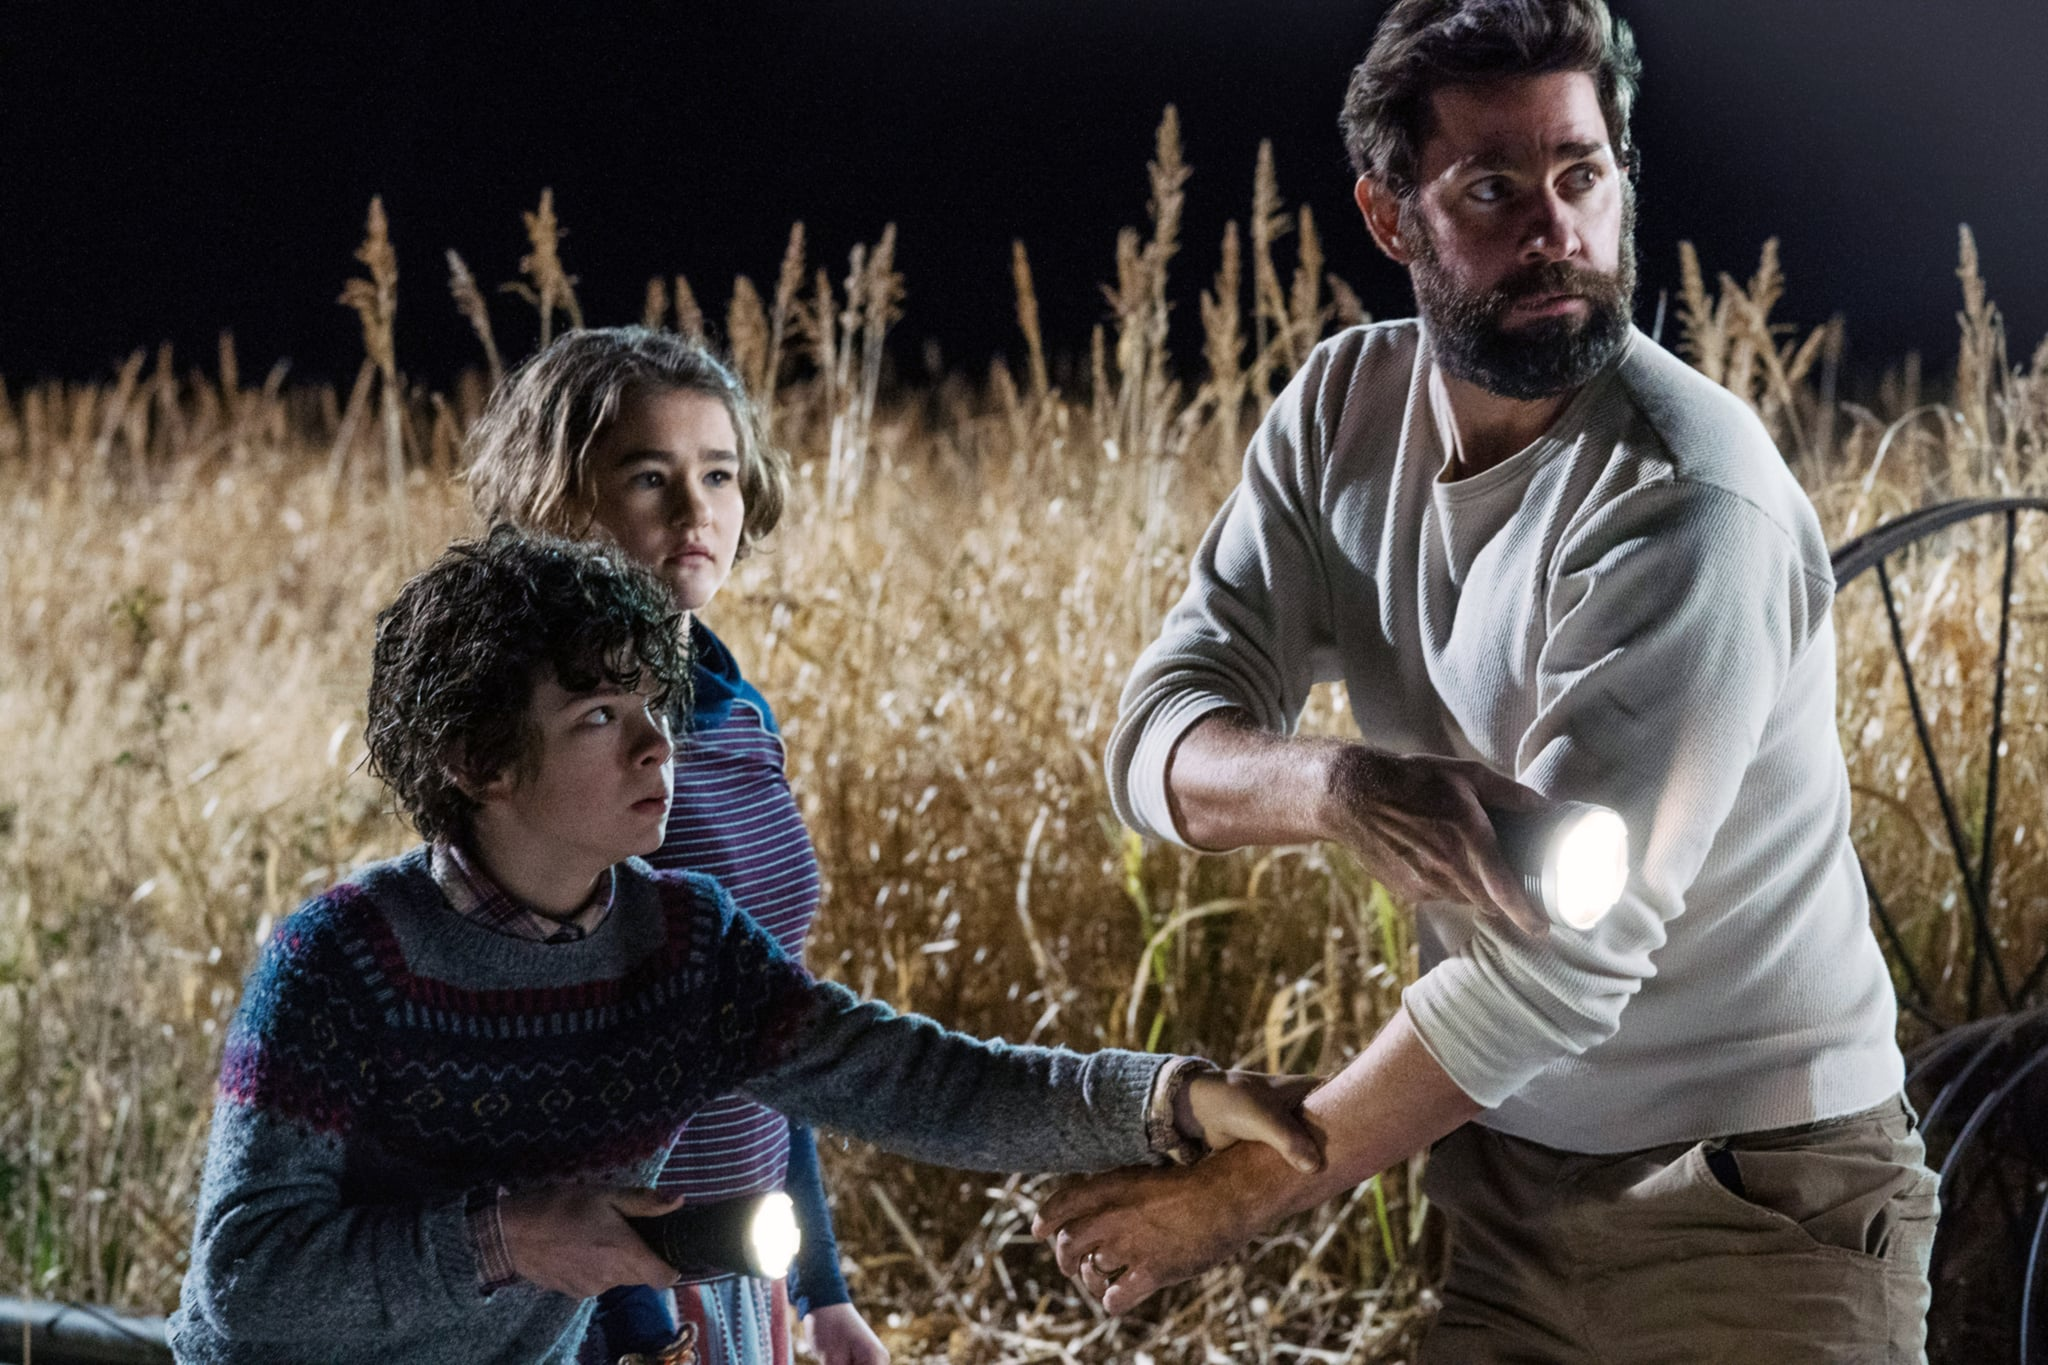 A QUIET PLACE, from left: Noah Jupe, Millicent Simmonds, John Krasinski, 2018. ph: Jonny Cournoyer /  Paramount /Courtesy Everett Collection